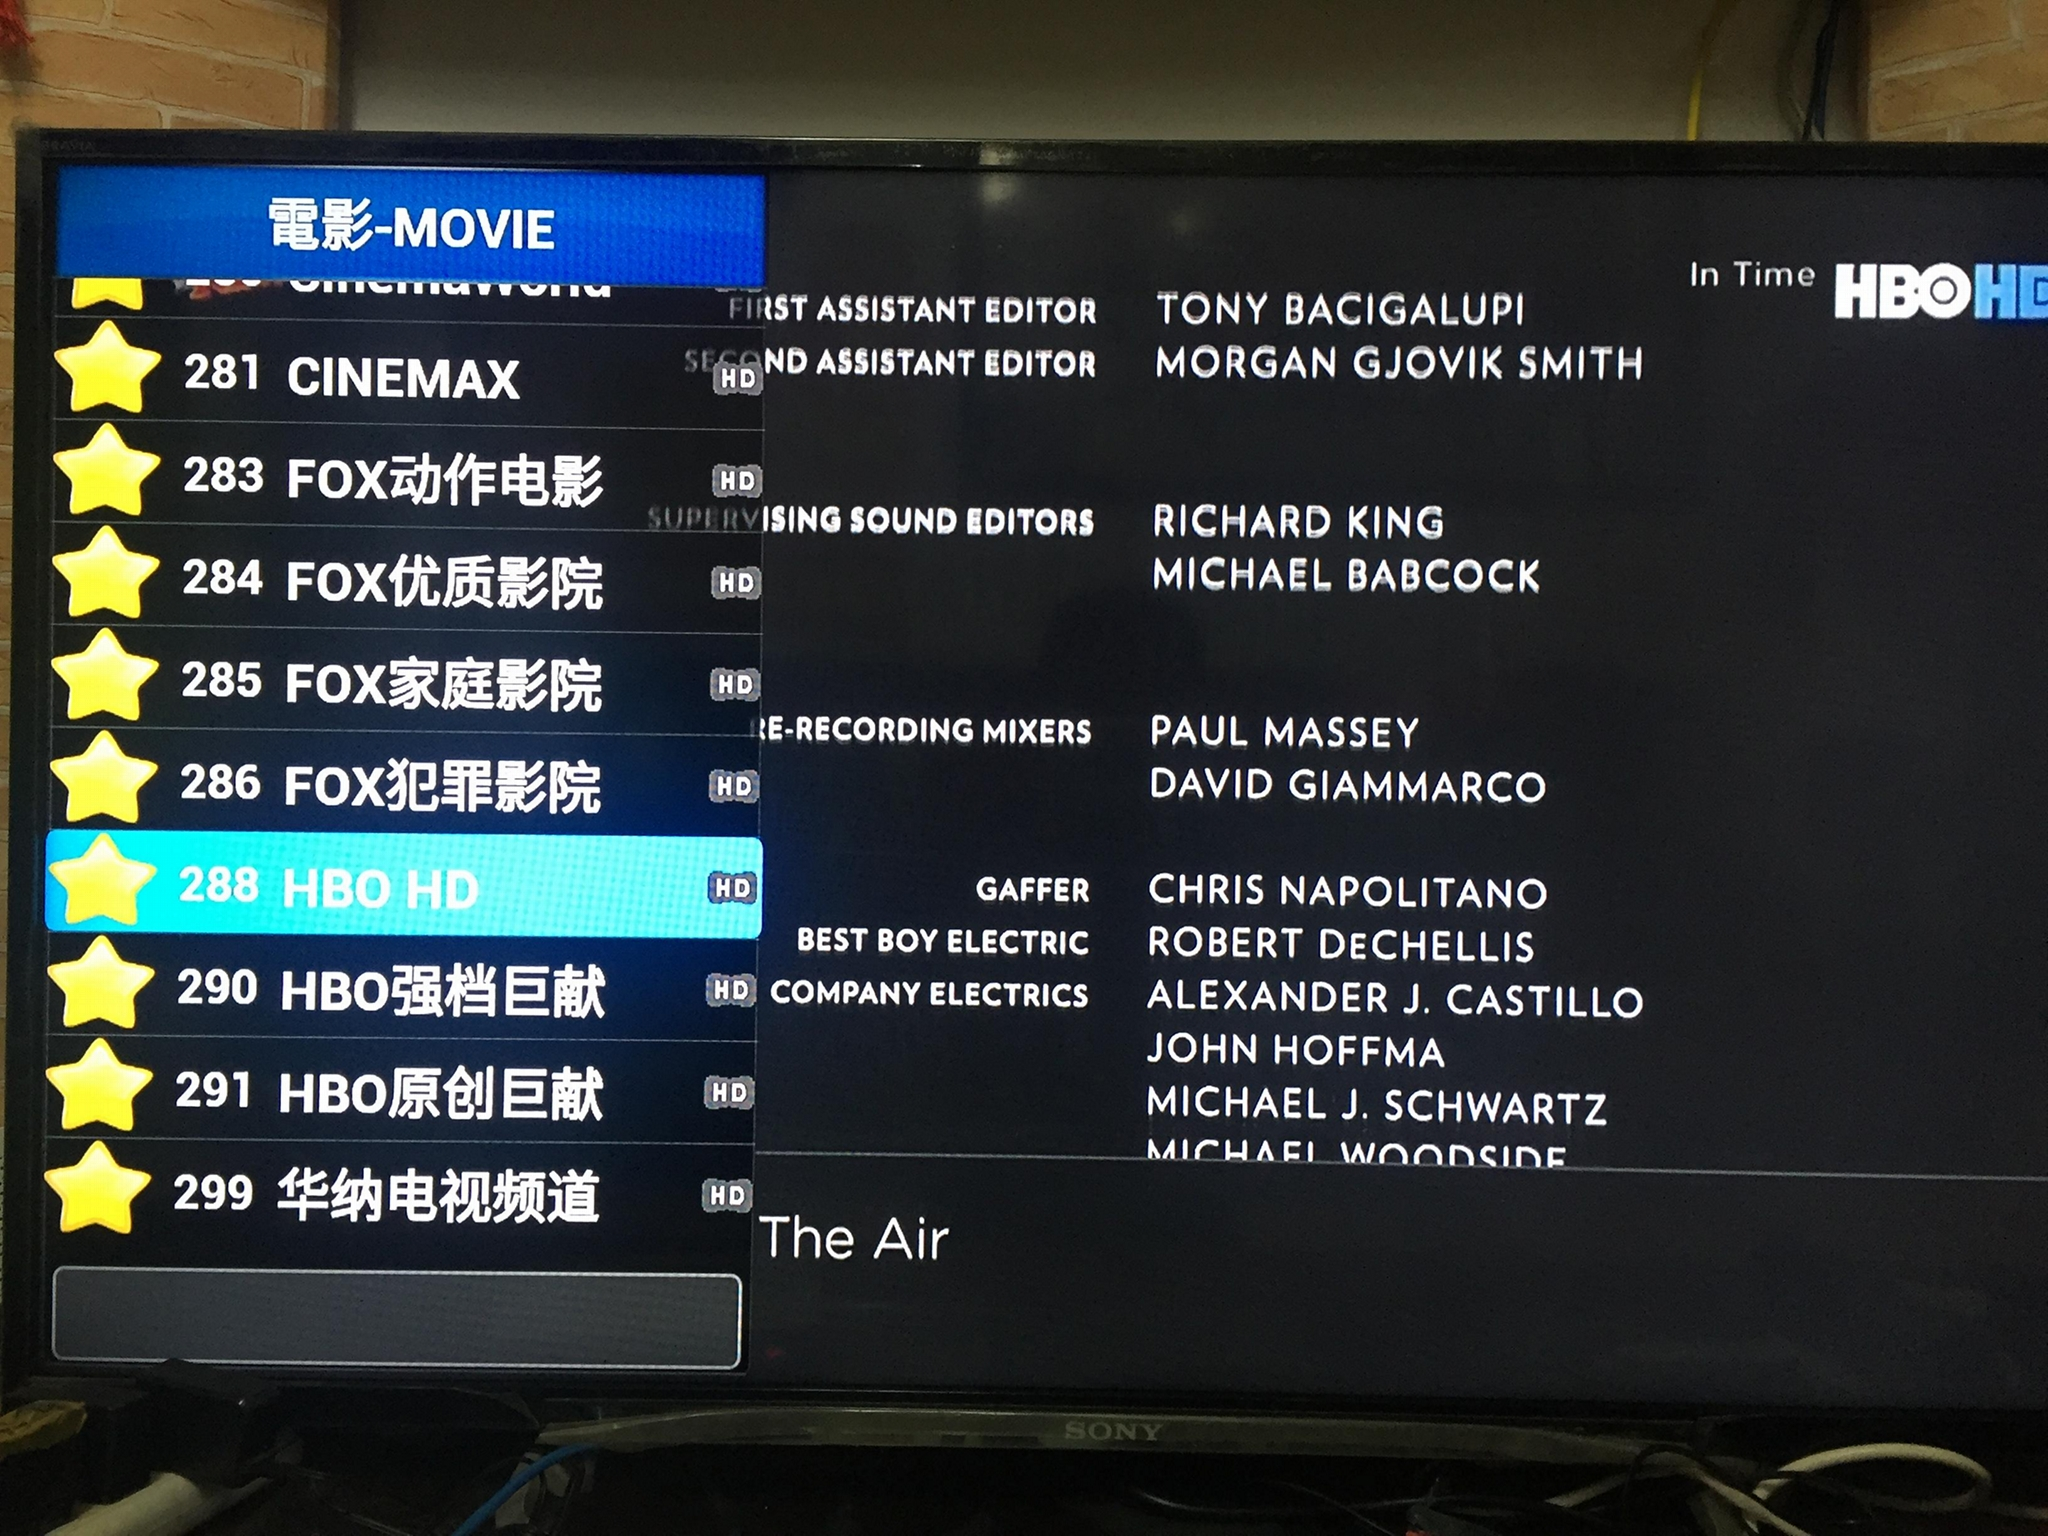 Turbo TV box Sunshine TV IPTV Singapore with Starhub tv channels and